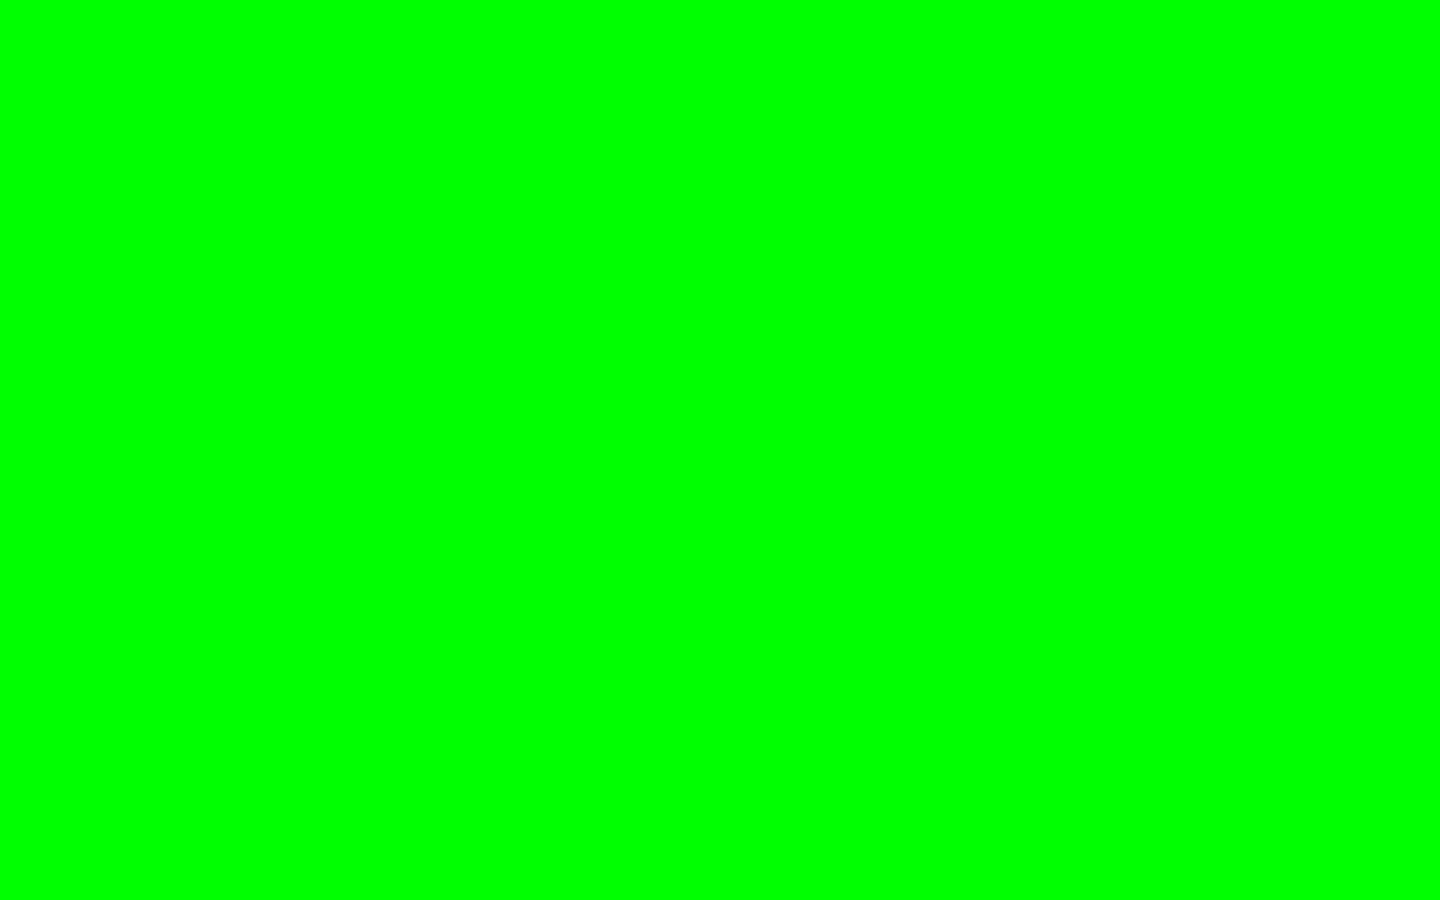 1440x900 Green X11 Gui Green Solid Color Background